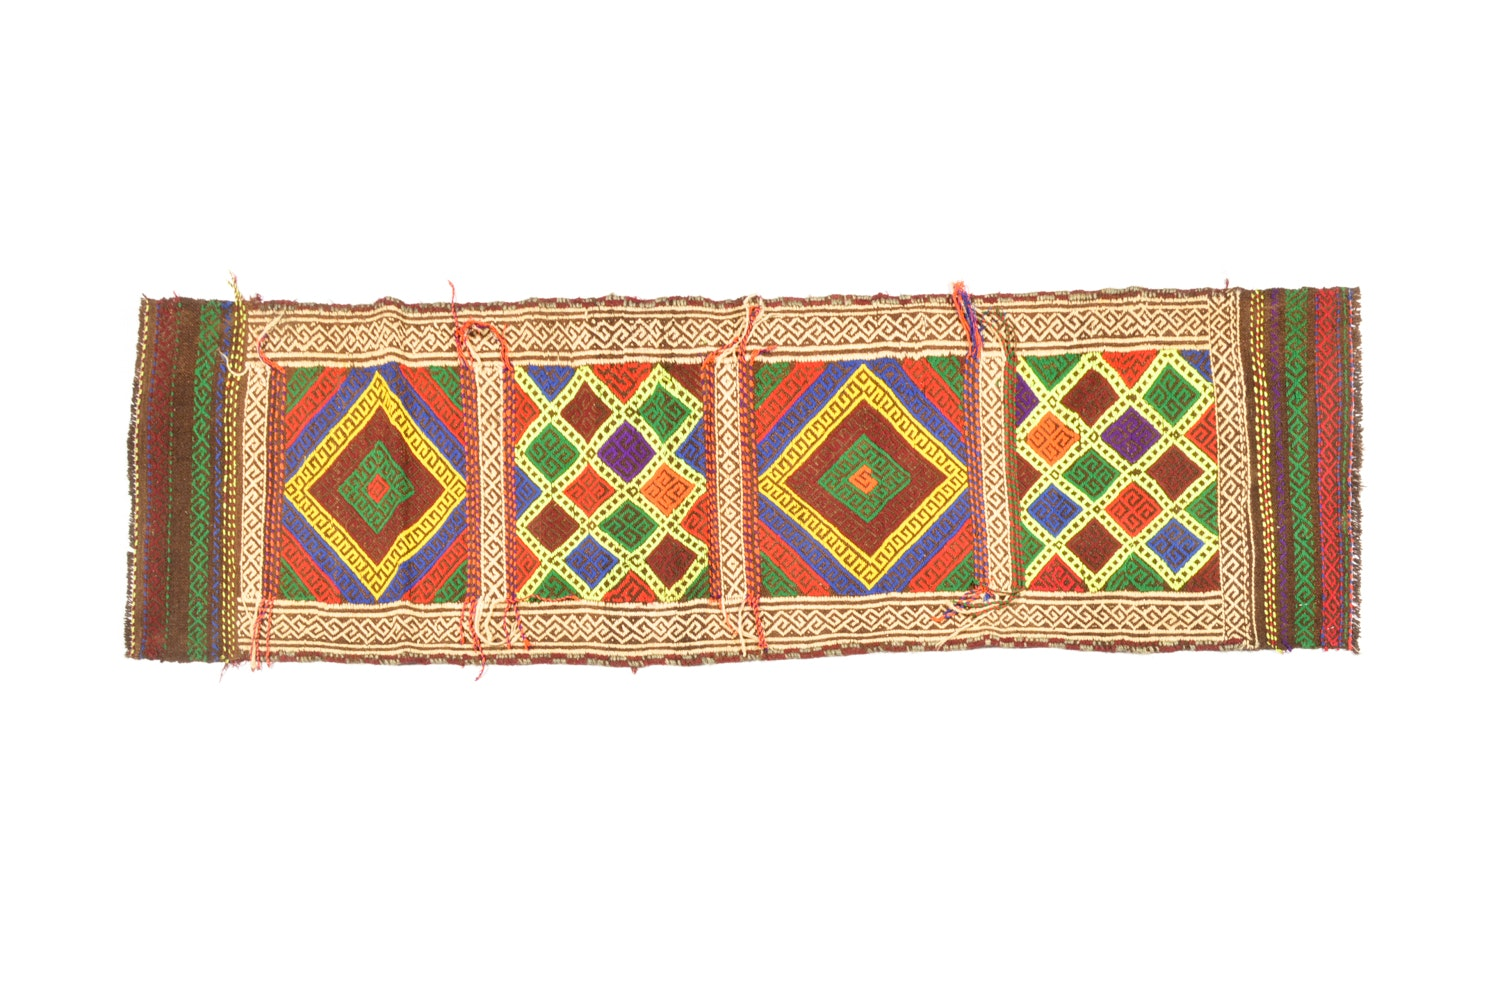 Handwoven and Embroidered Anatolian Carpet Runner